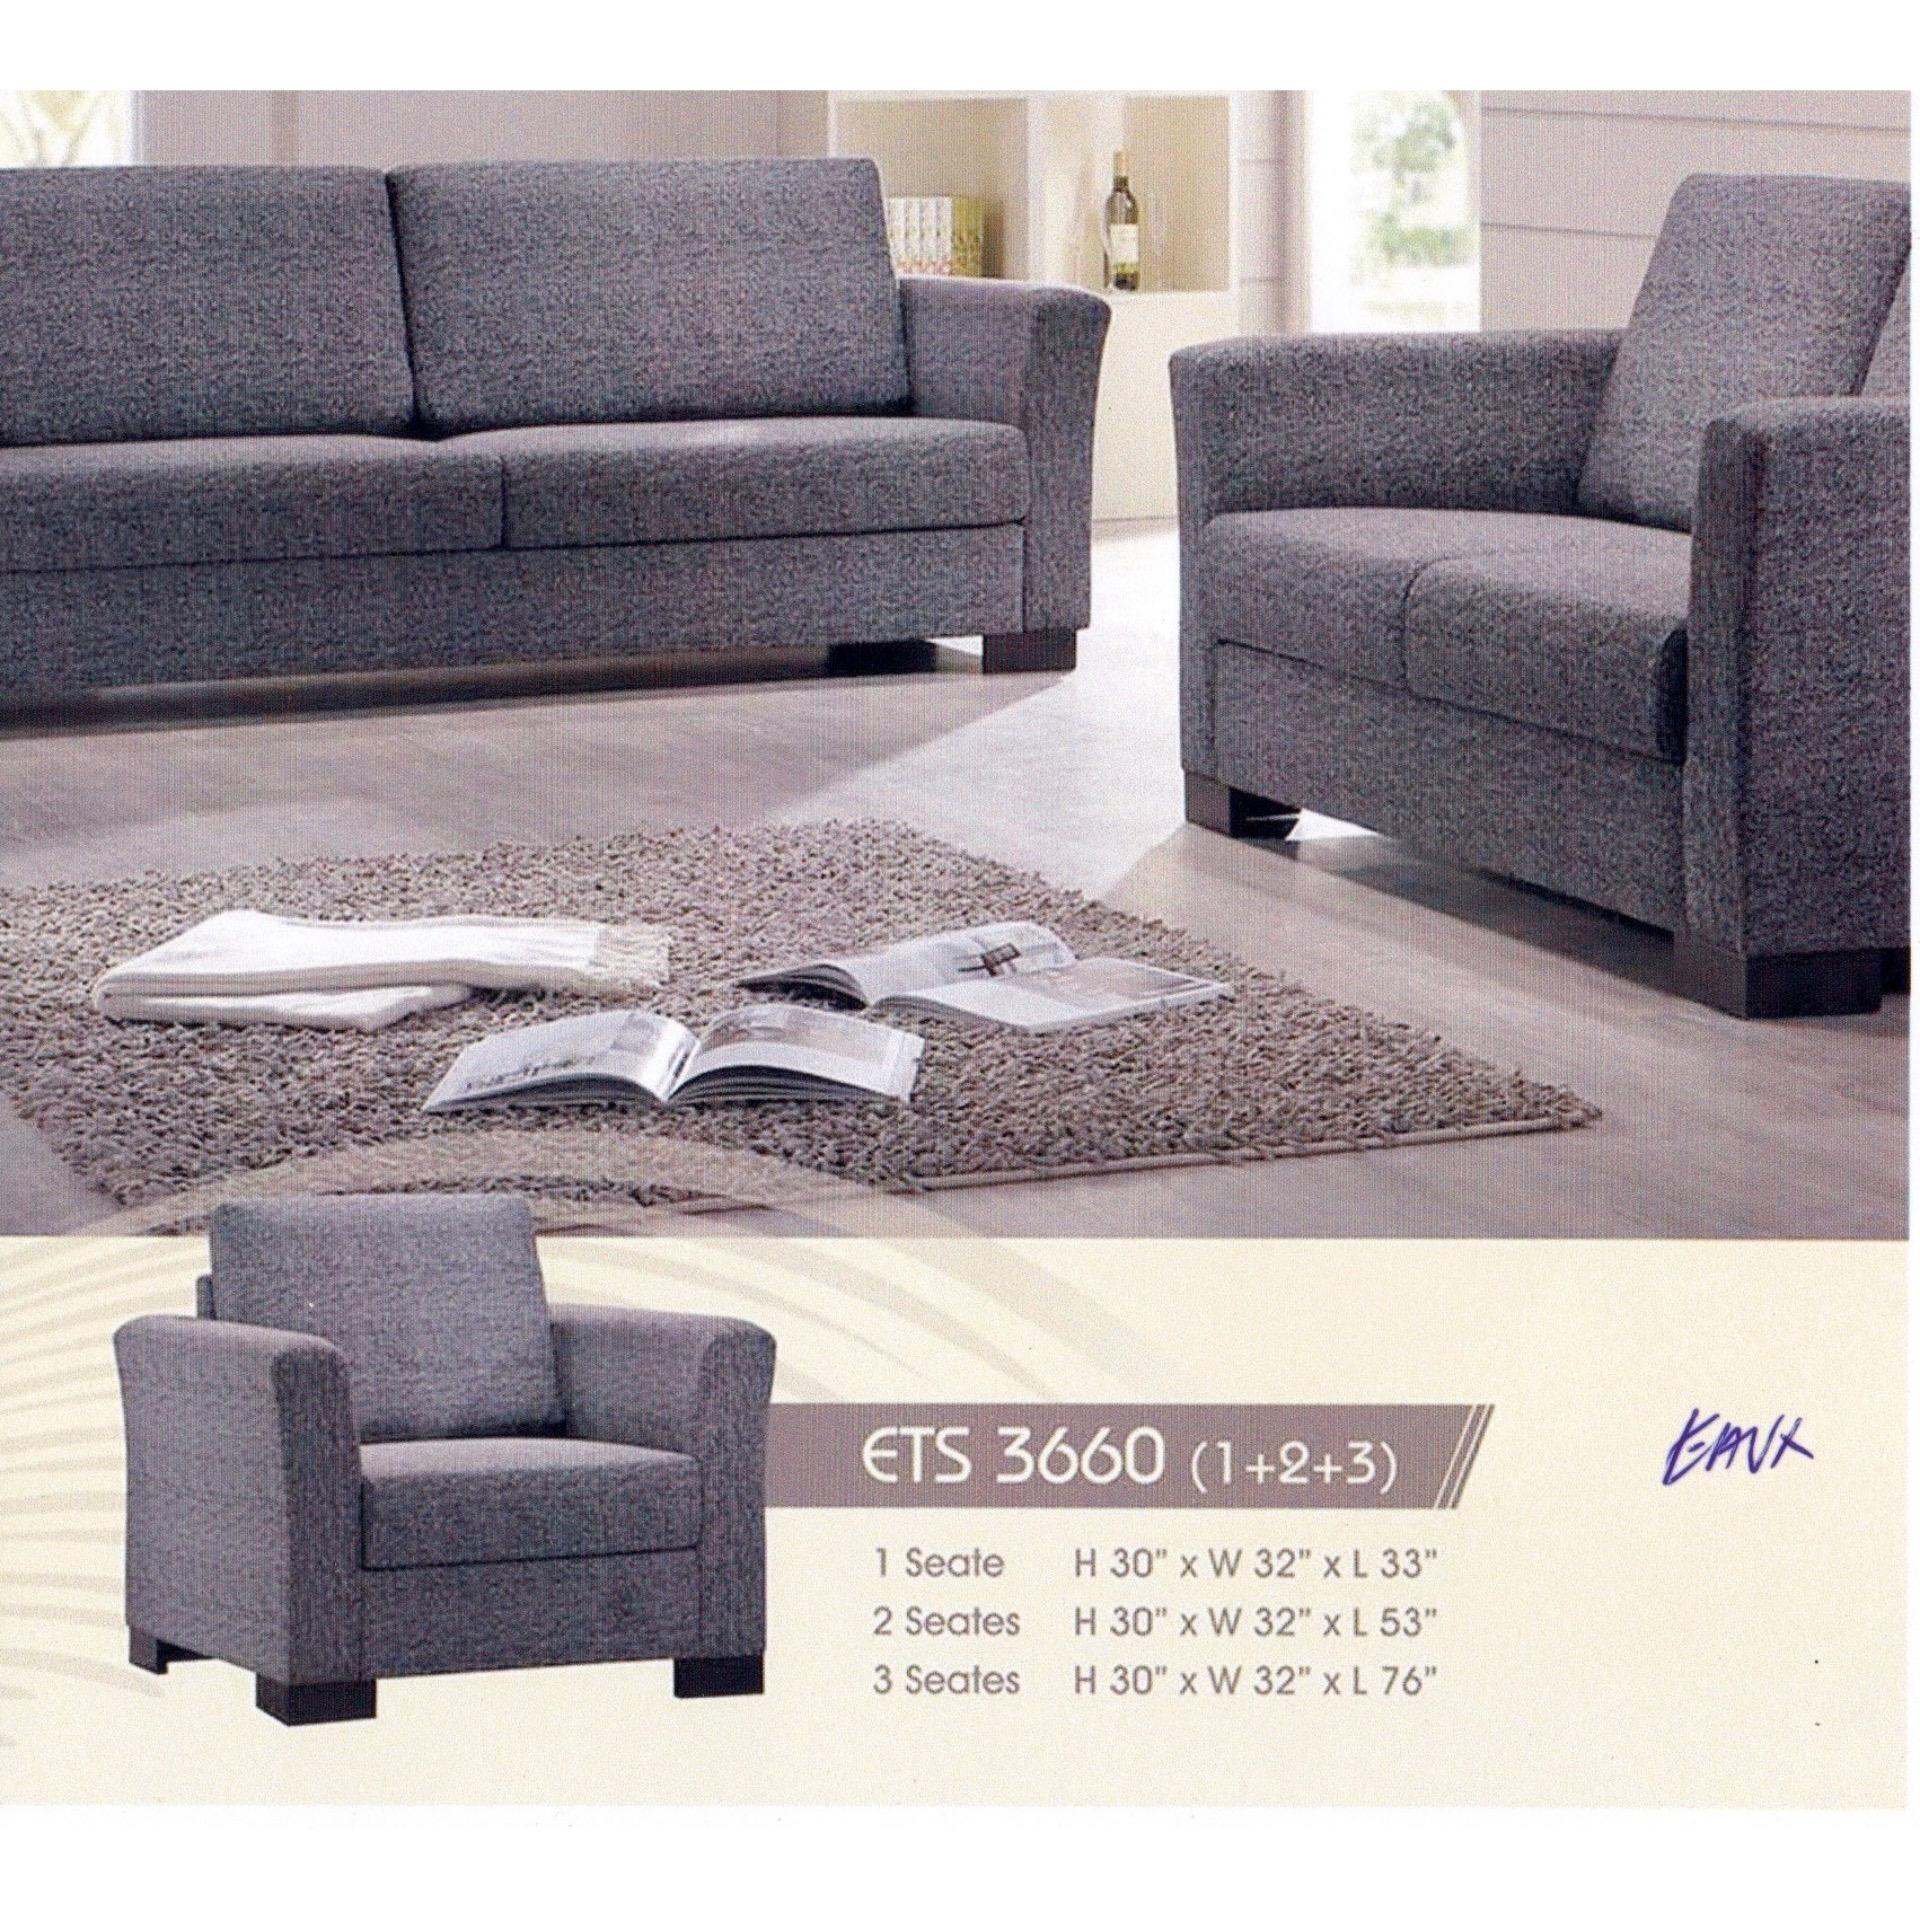 1+2+3 Leather Cushion Sofa Lounge Chair Relax Sofa Set (Grey Color)